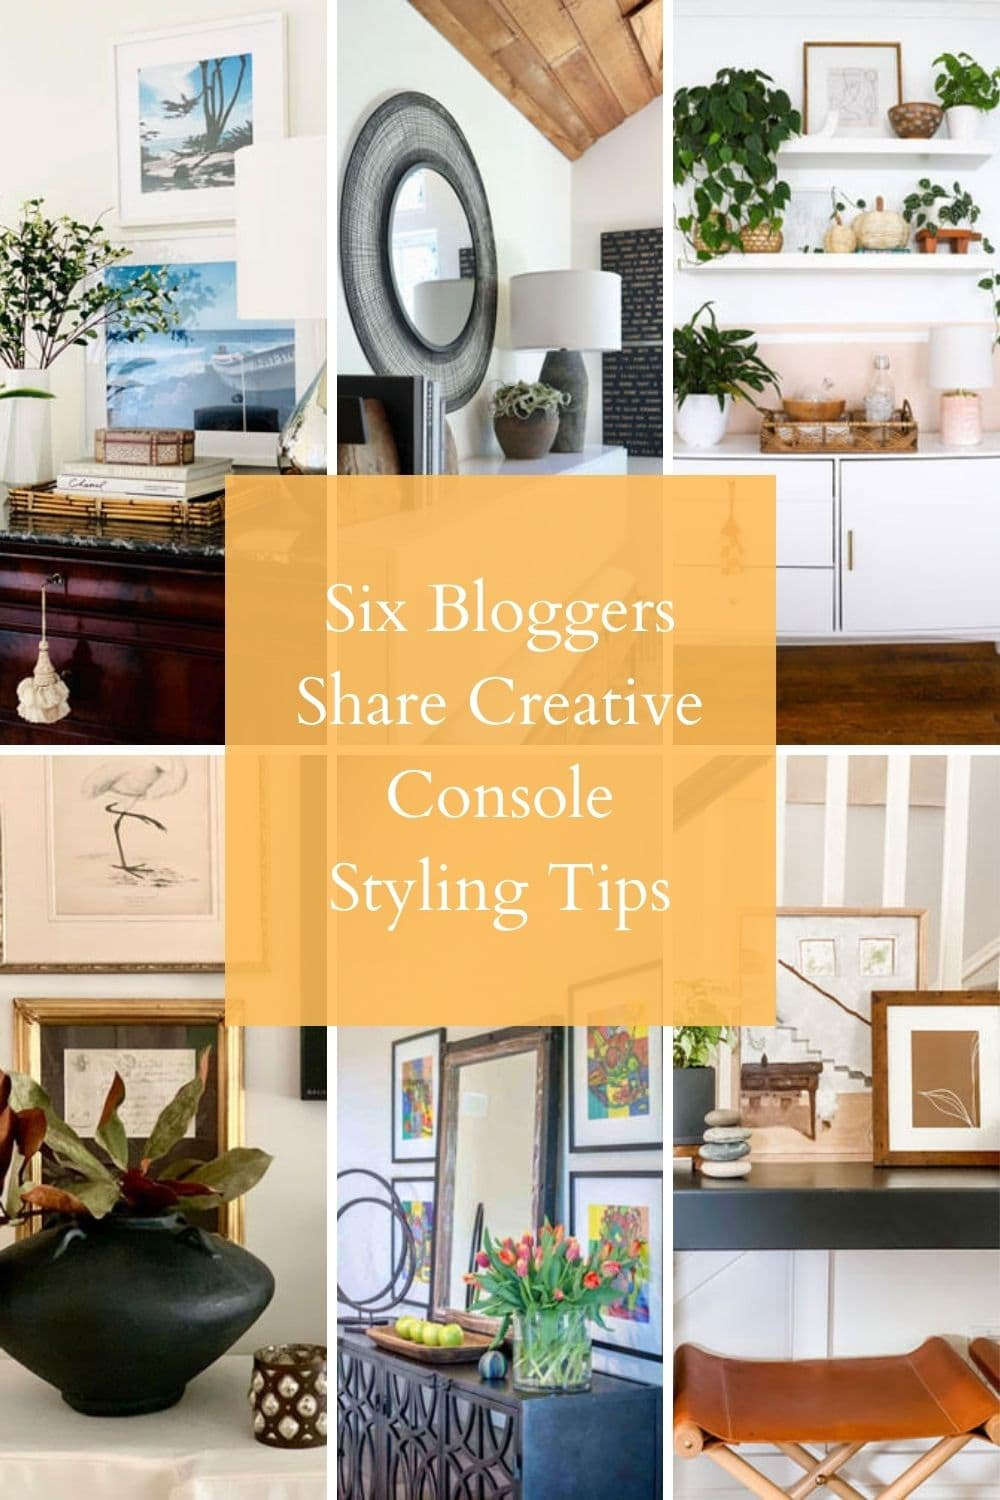 Six bloggers share ideas on how to style a console table.